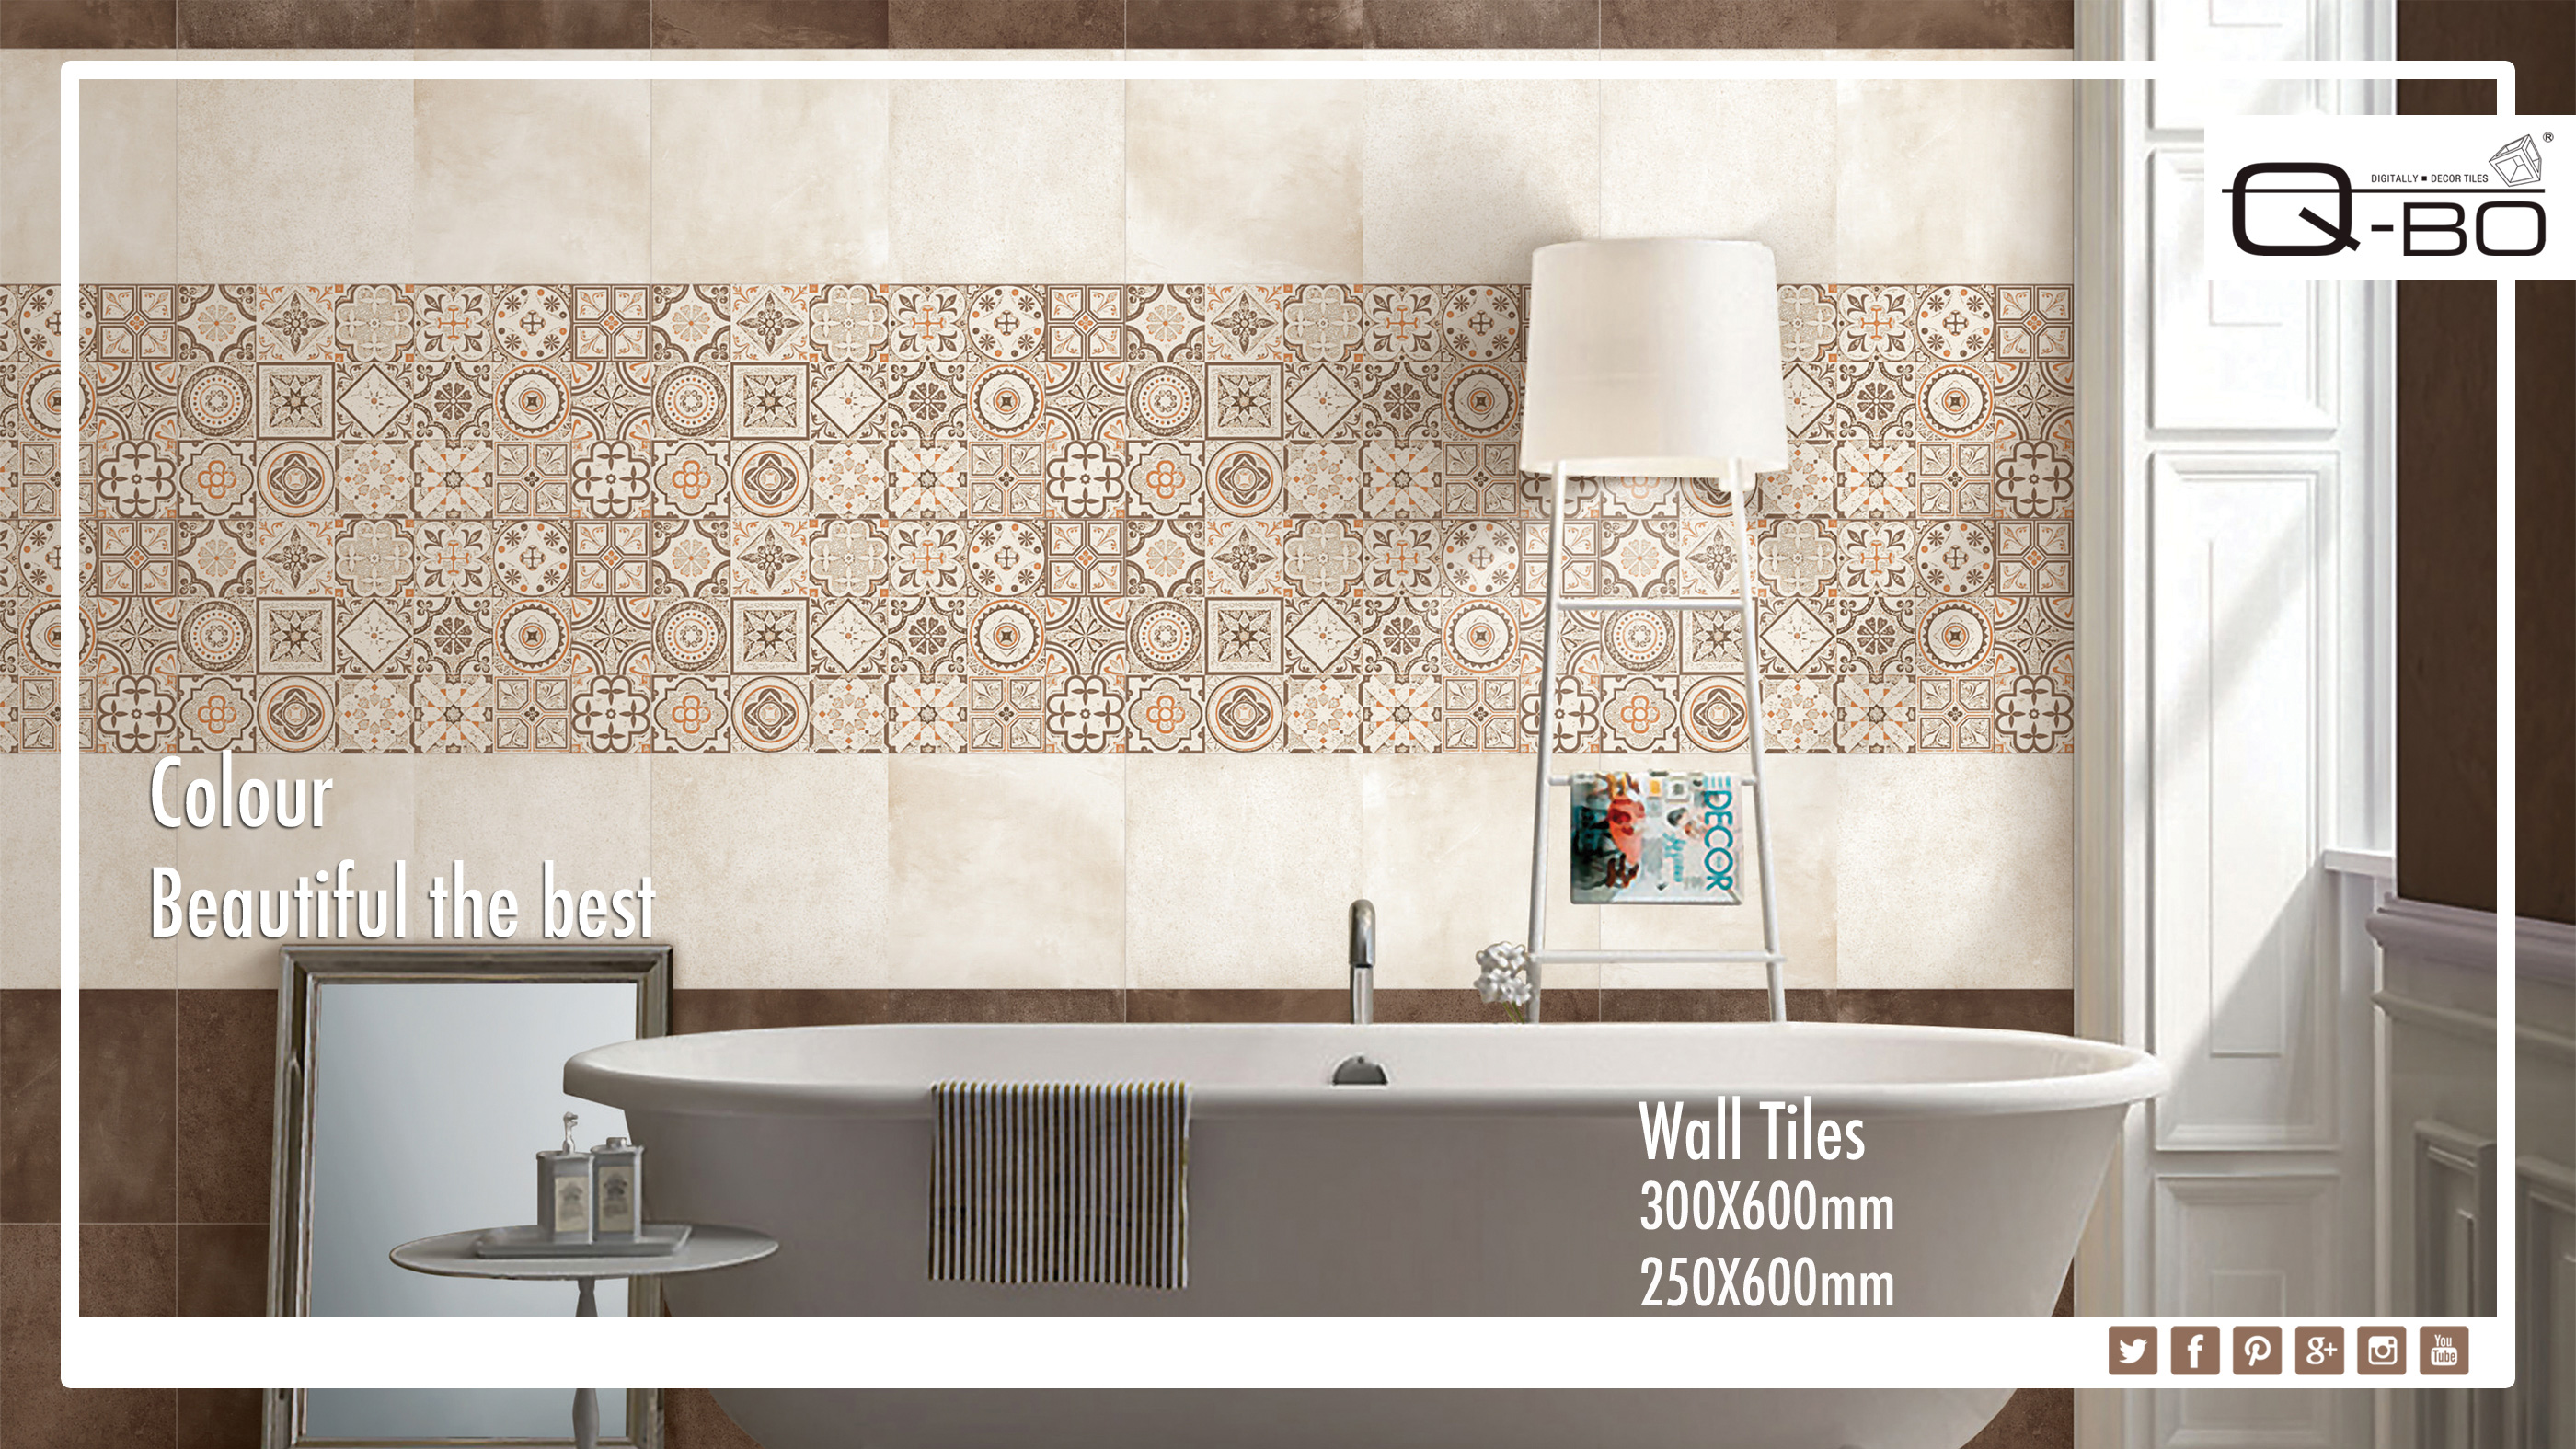 Since Planning A Tile Layout Plays An Important Role In Bathroom Remodeling  And Renovating, Several Parameters Have To Be Considered While Choosing A  Right ...